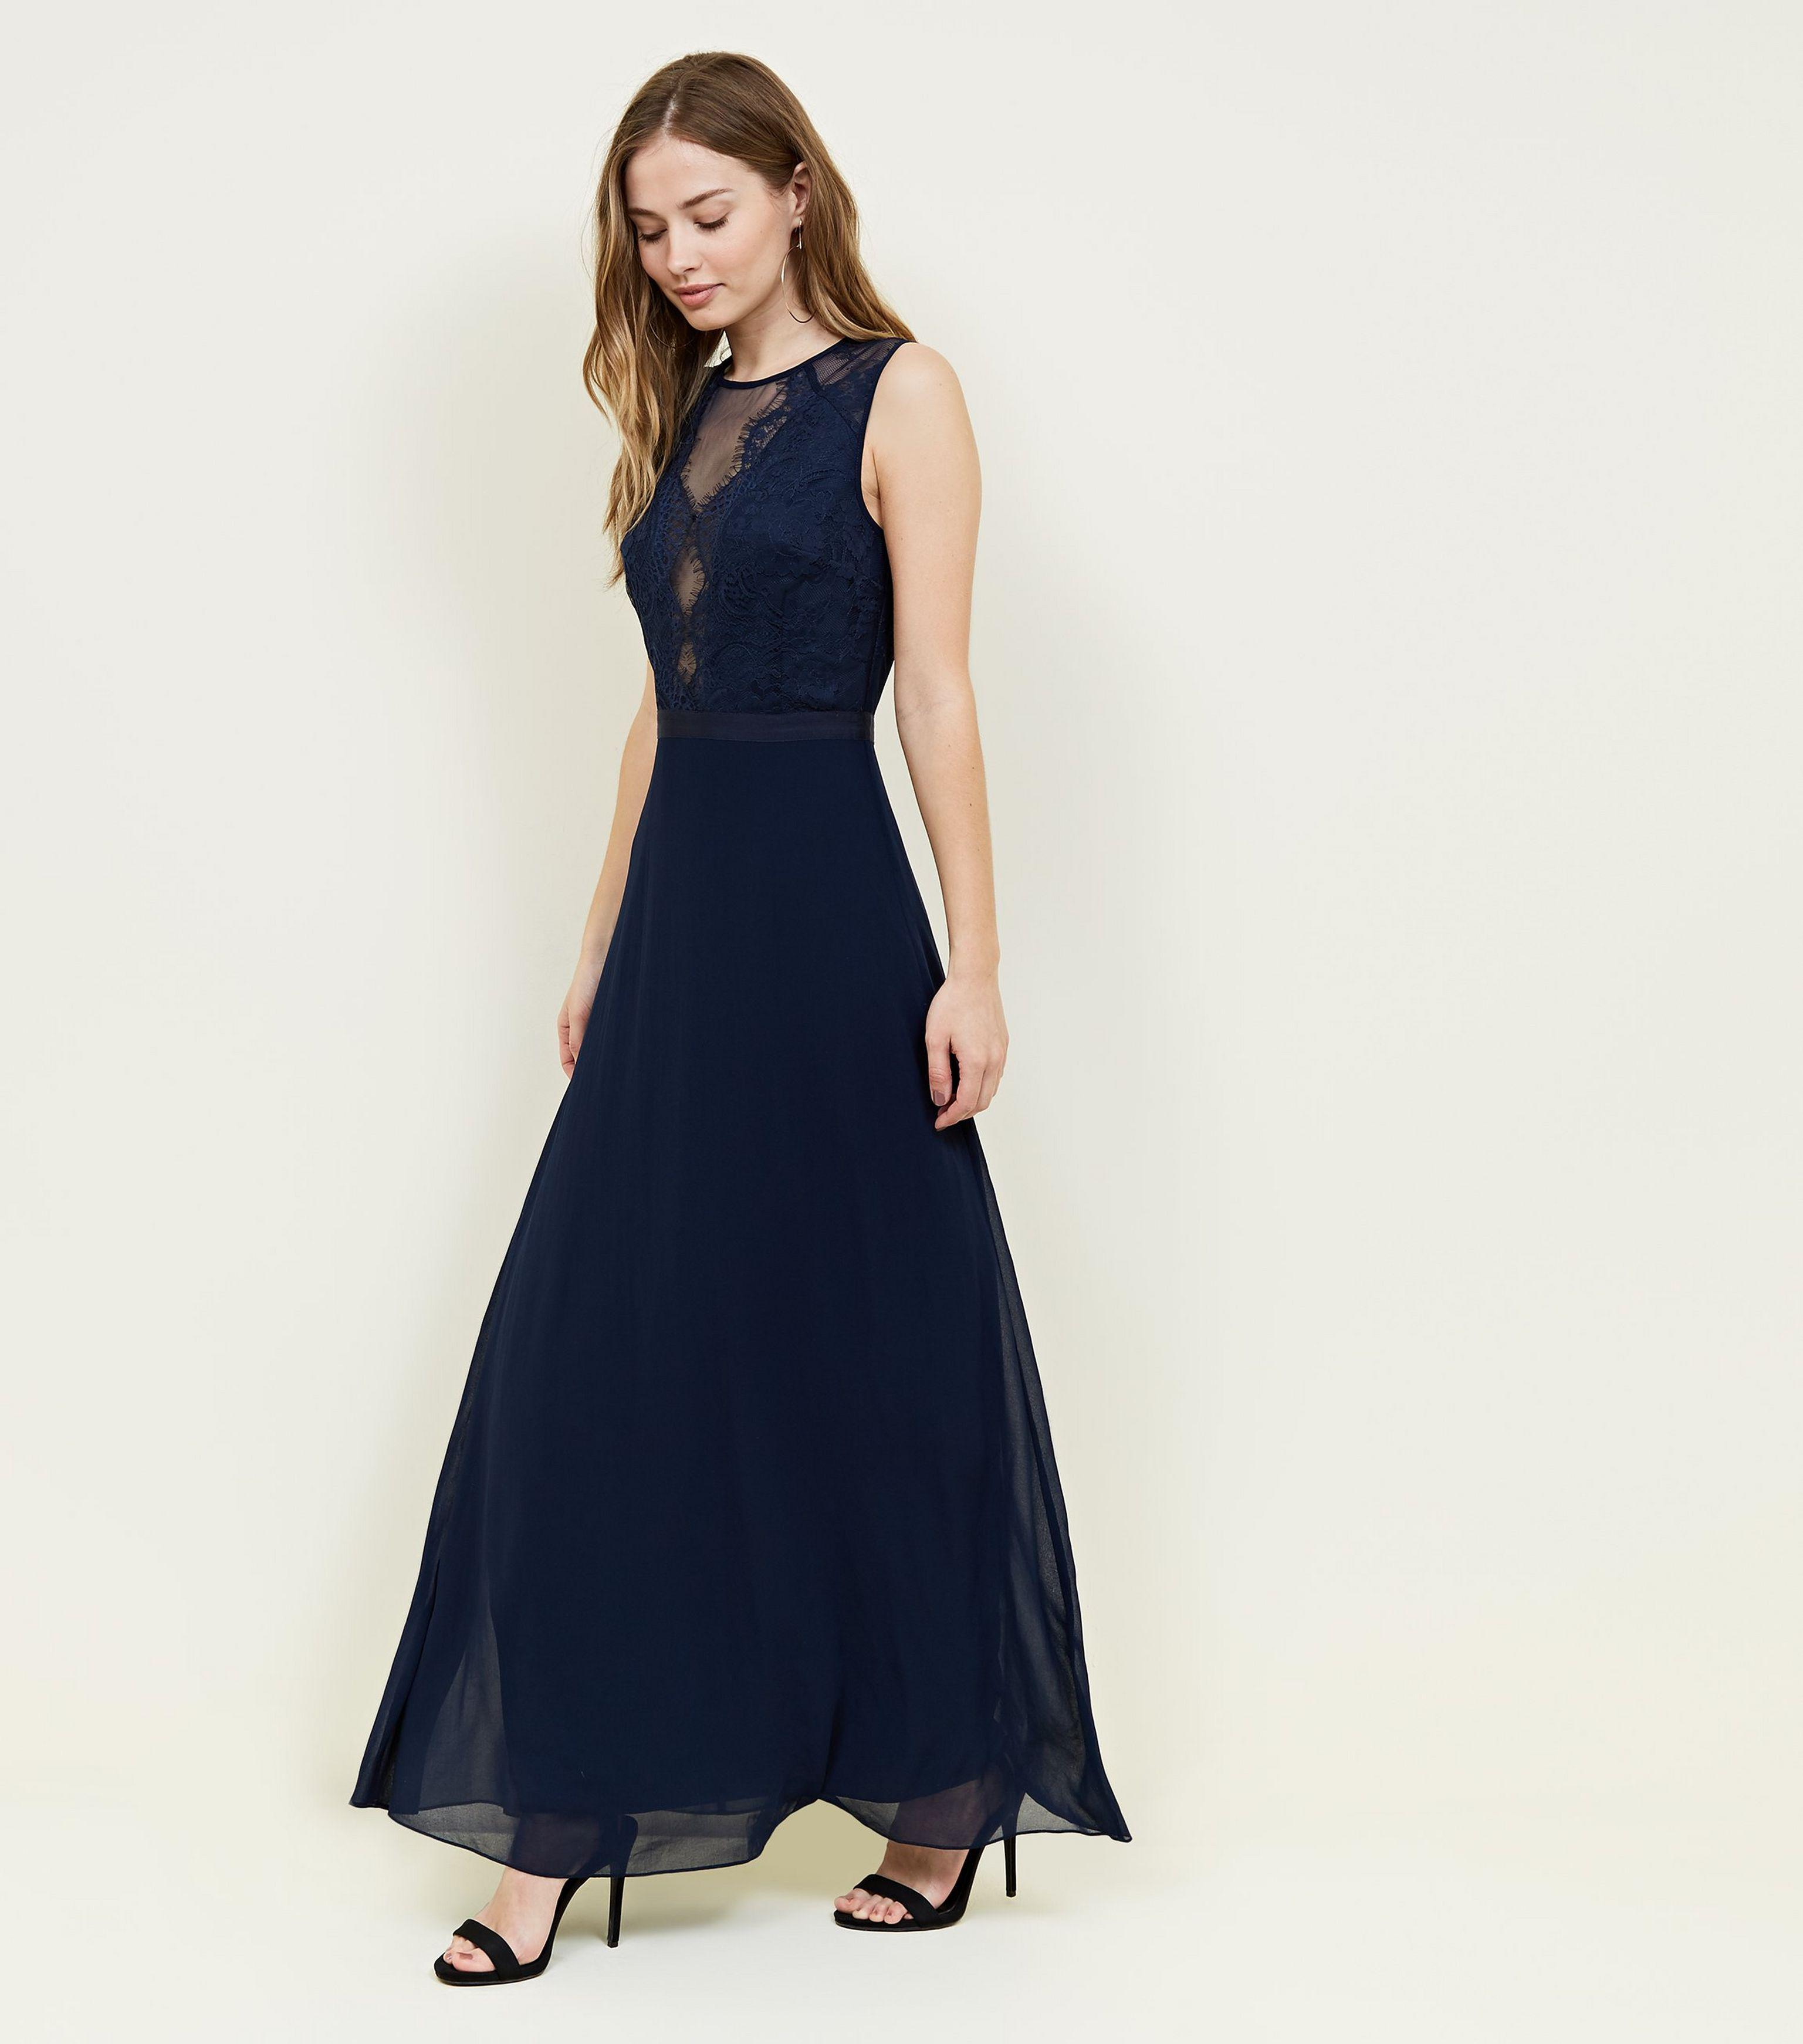 New Look Navy Lace And Chiffon Maxi Party Dress in Blue - Lyst 1a870f4e6